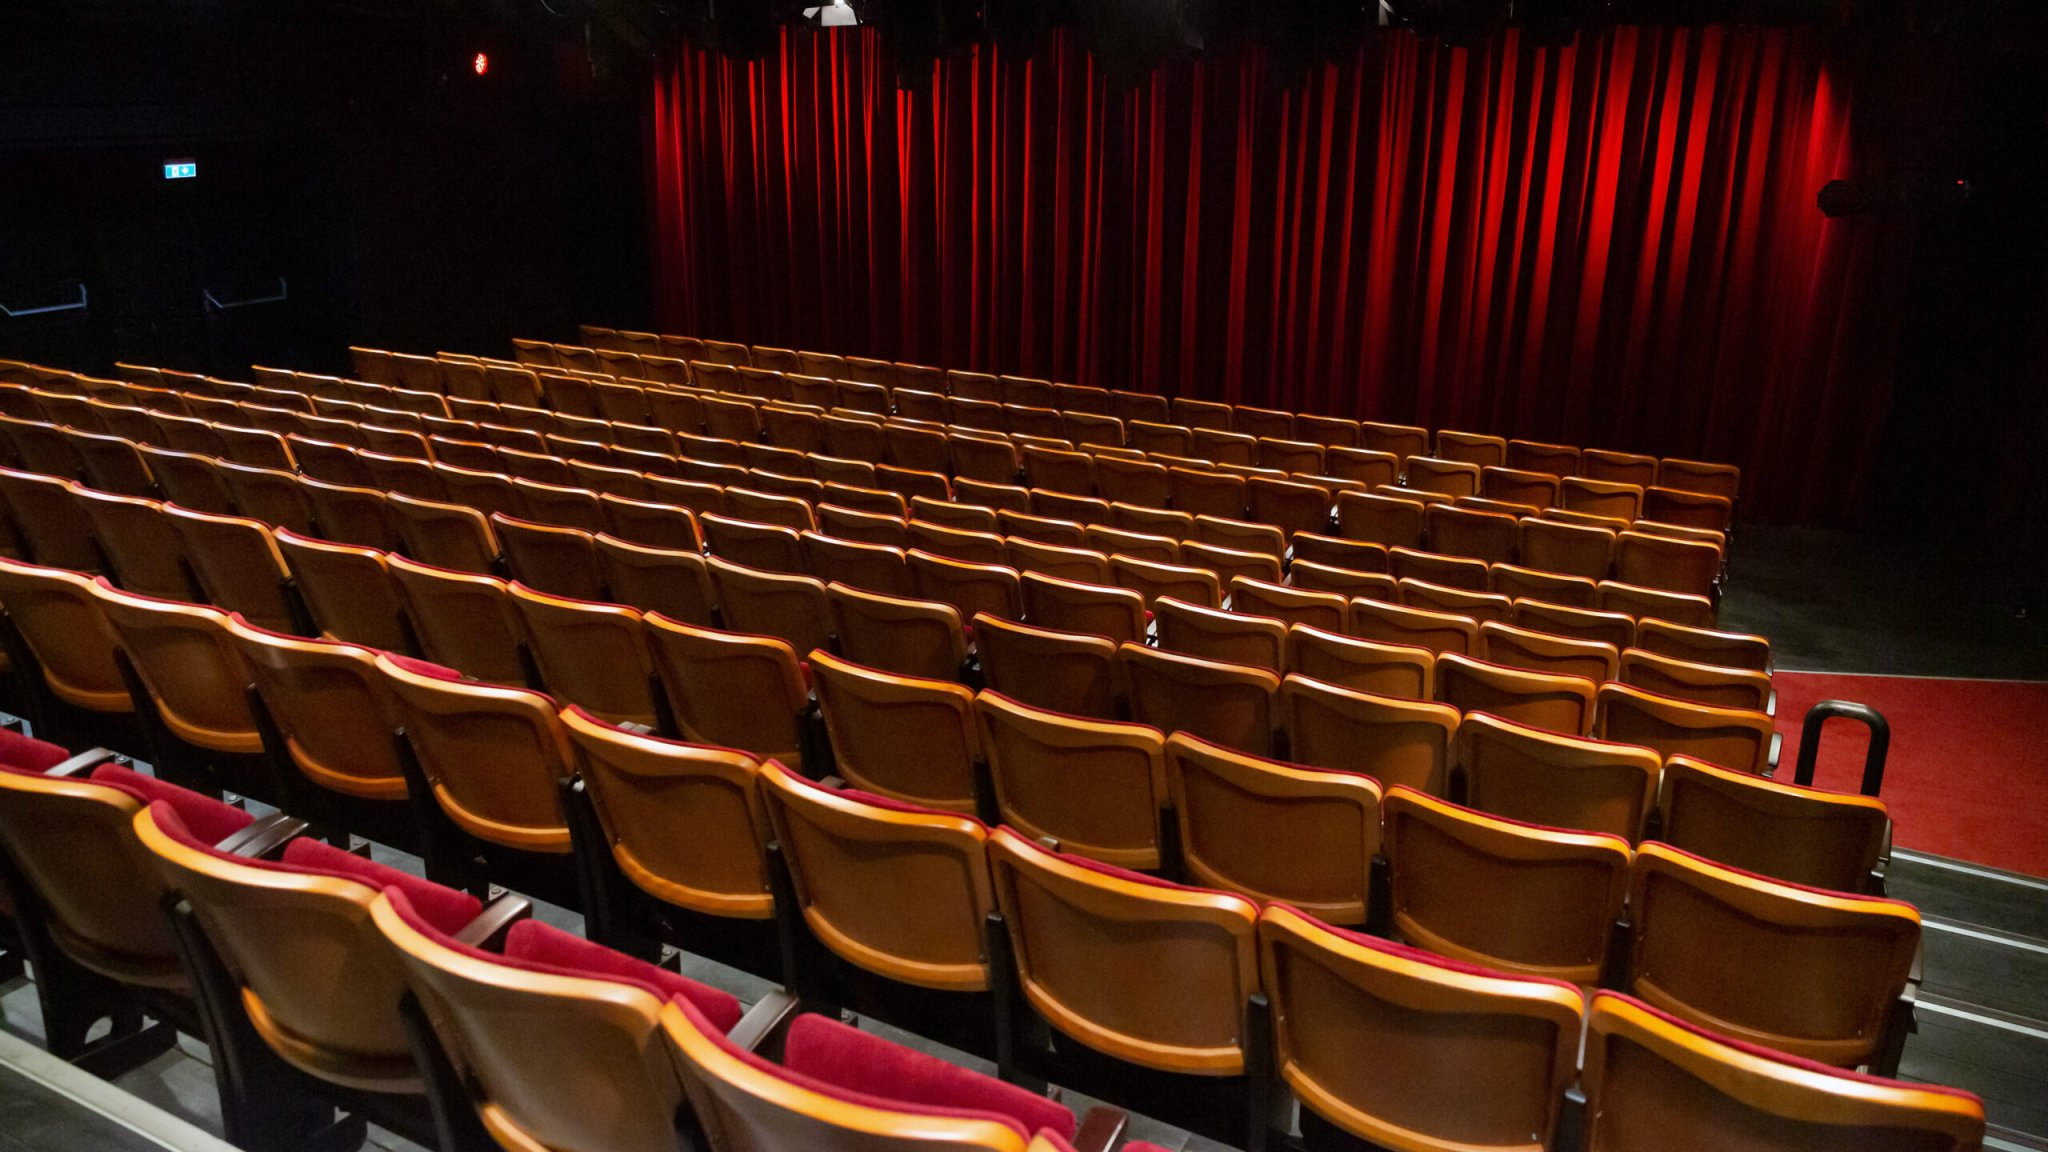 America's Biggest Movie Theater Chain Will Be Out Of Money By Year End